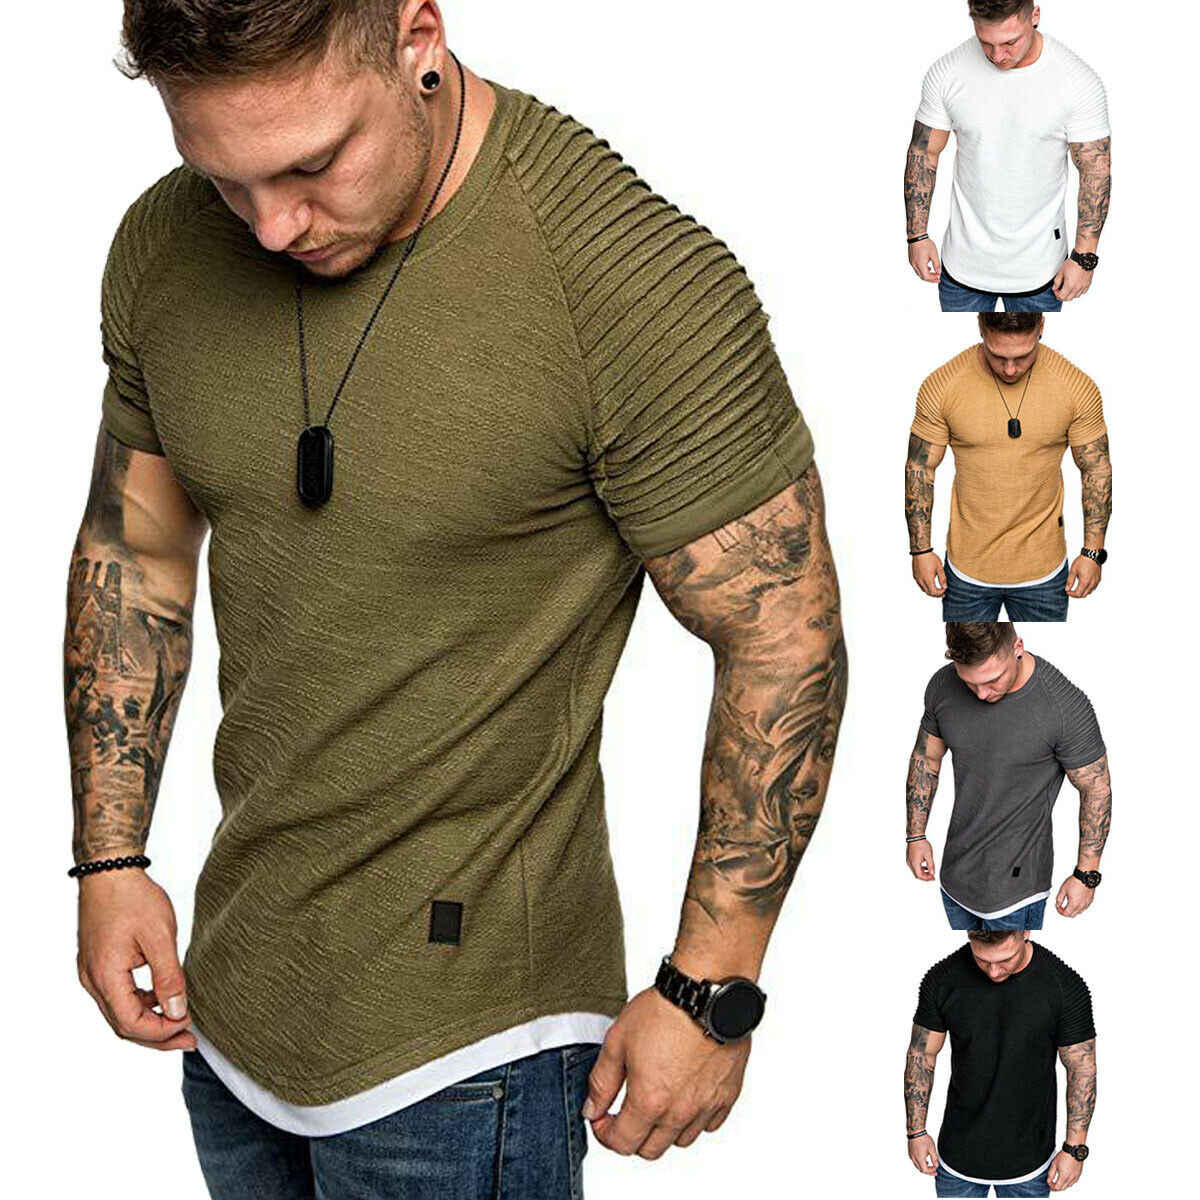 Hot mannen T-Shirts Geplooide Gerimpelde Slim Fit O Hals Korte Mouwen Spier Solid Casual Tops Shirts Zomer Basic Tee nieuwe